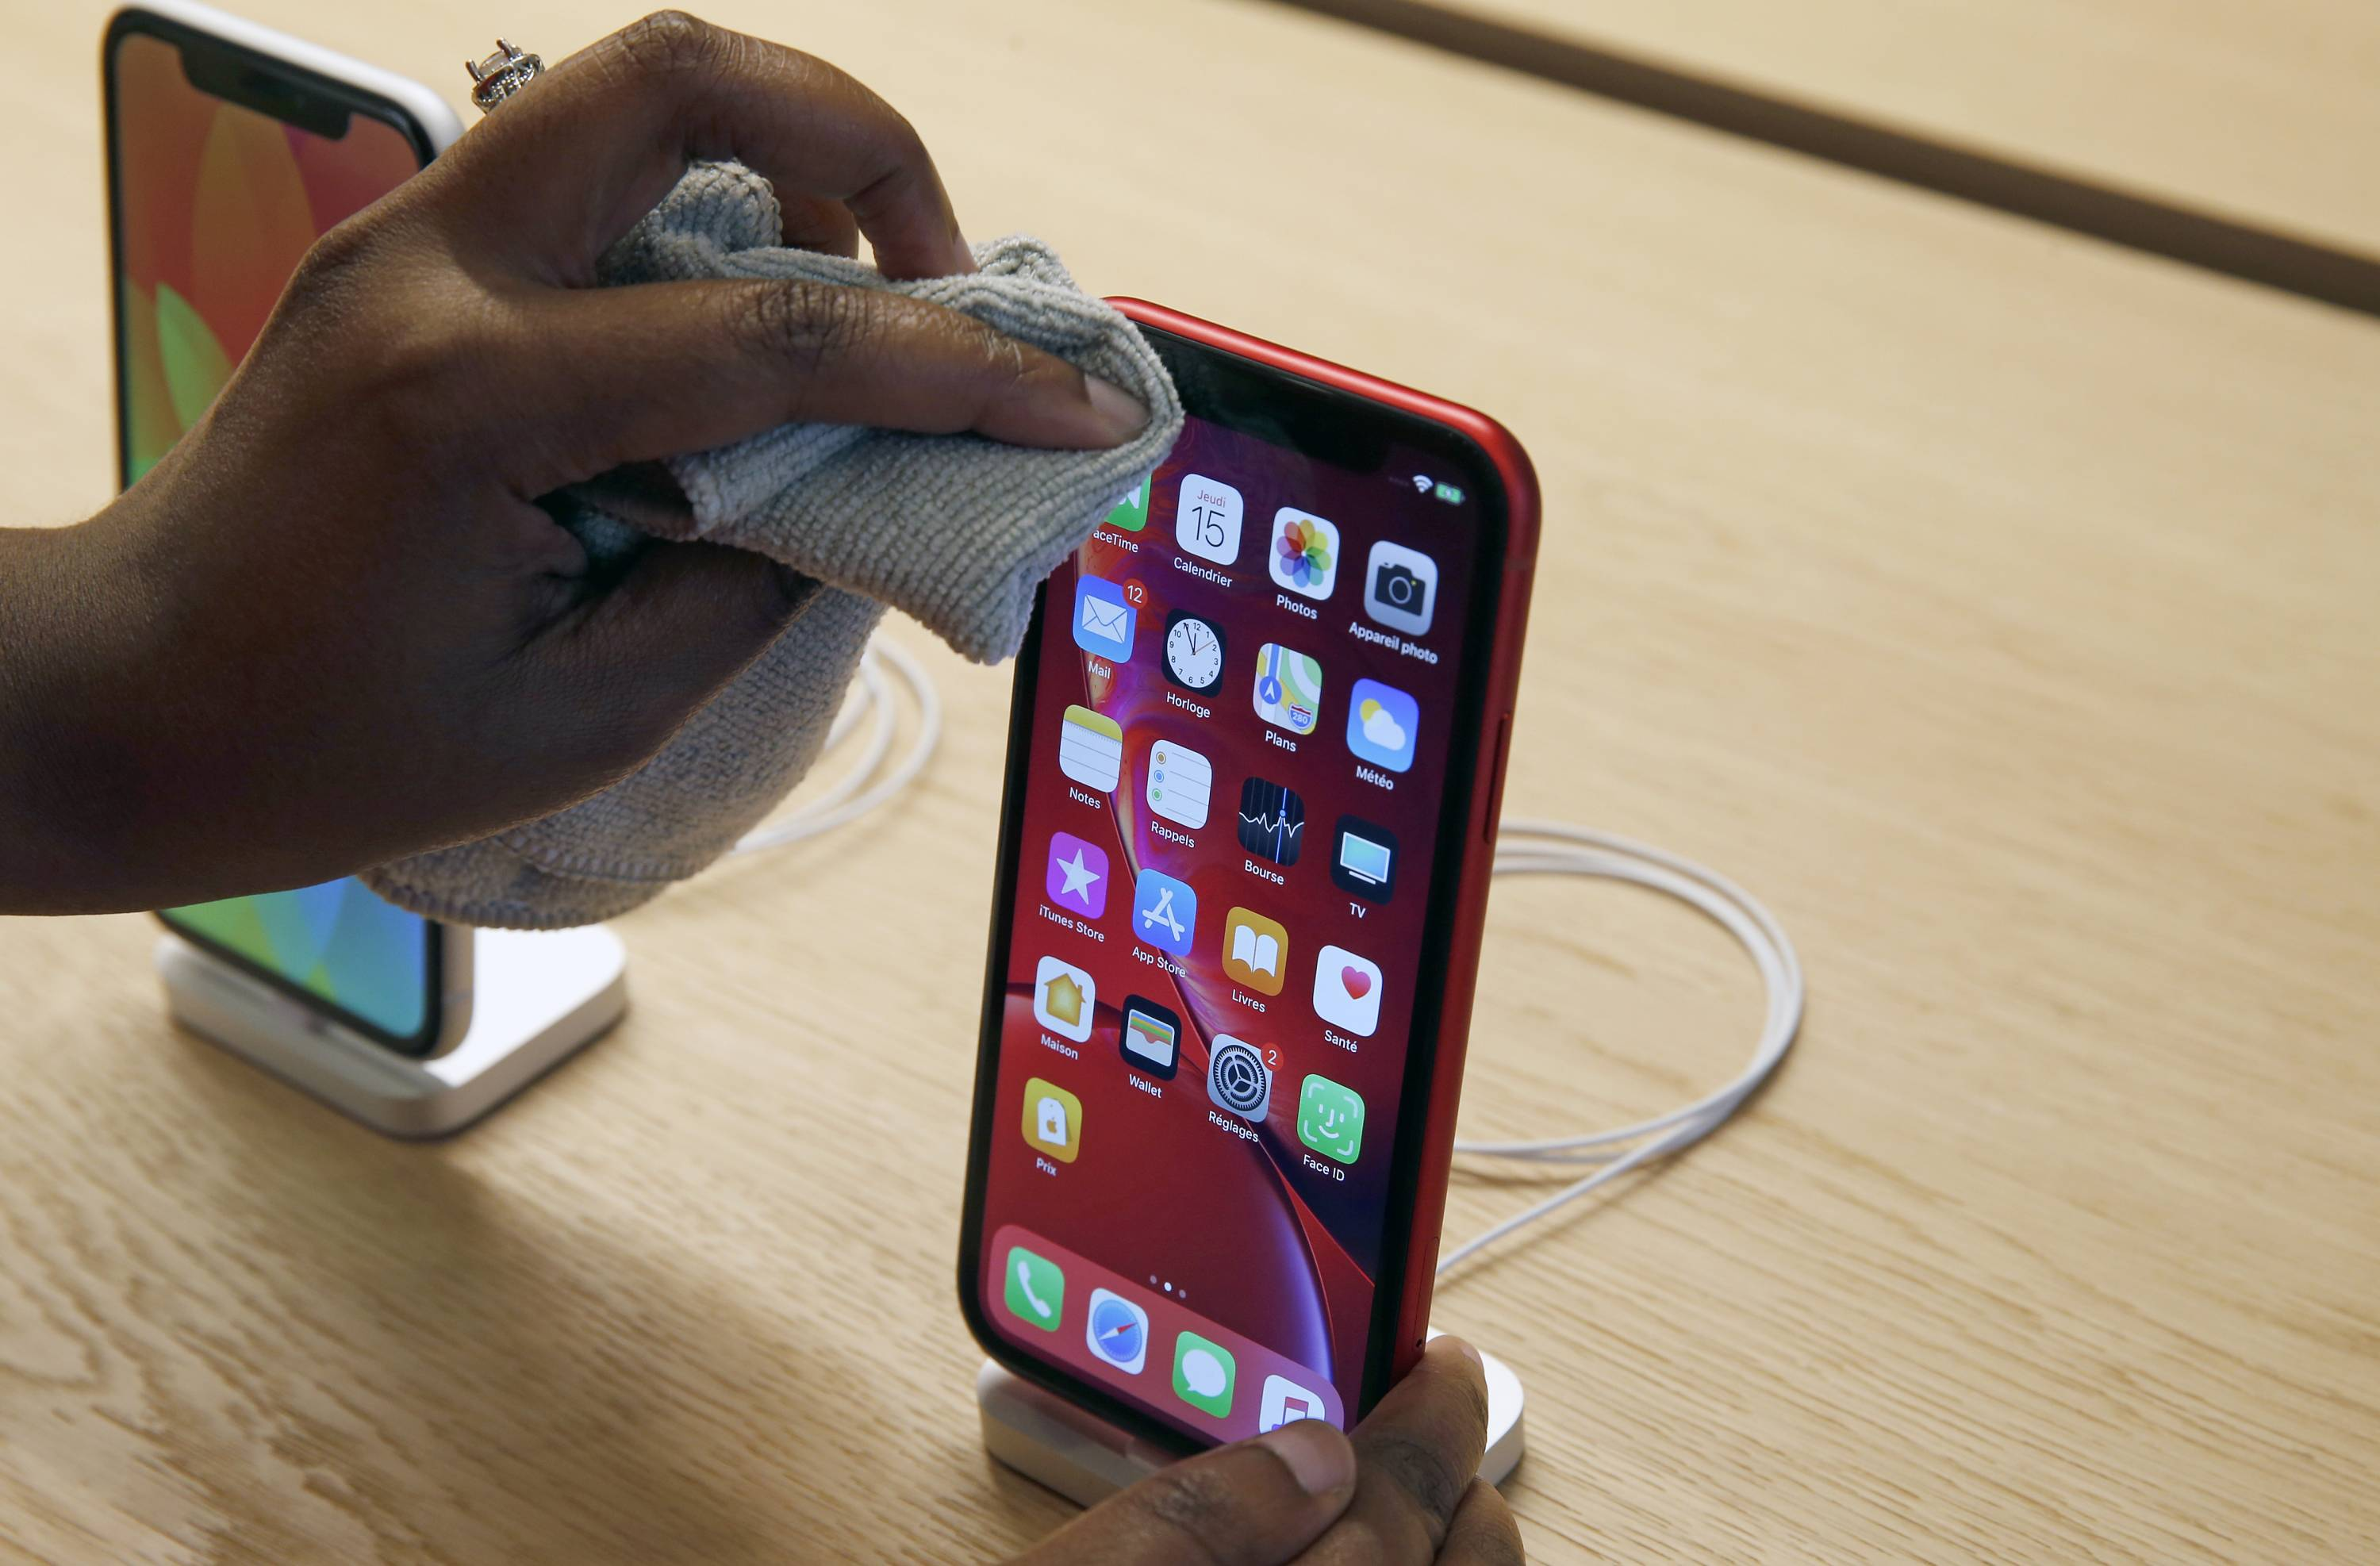 Apple's iPhone Assembler Foxconn Planning Massive Cuts Over Fears of Tough 2019